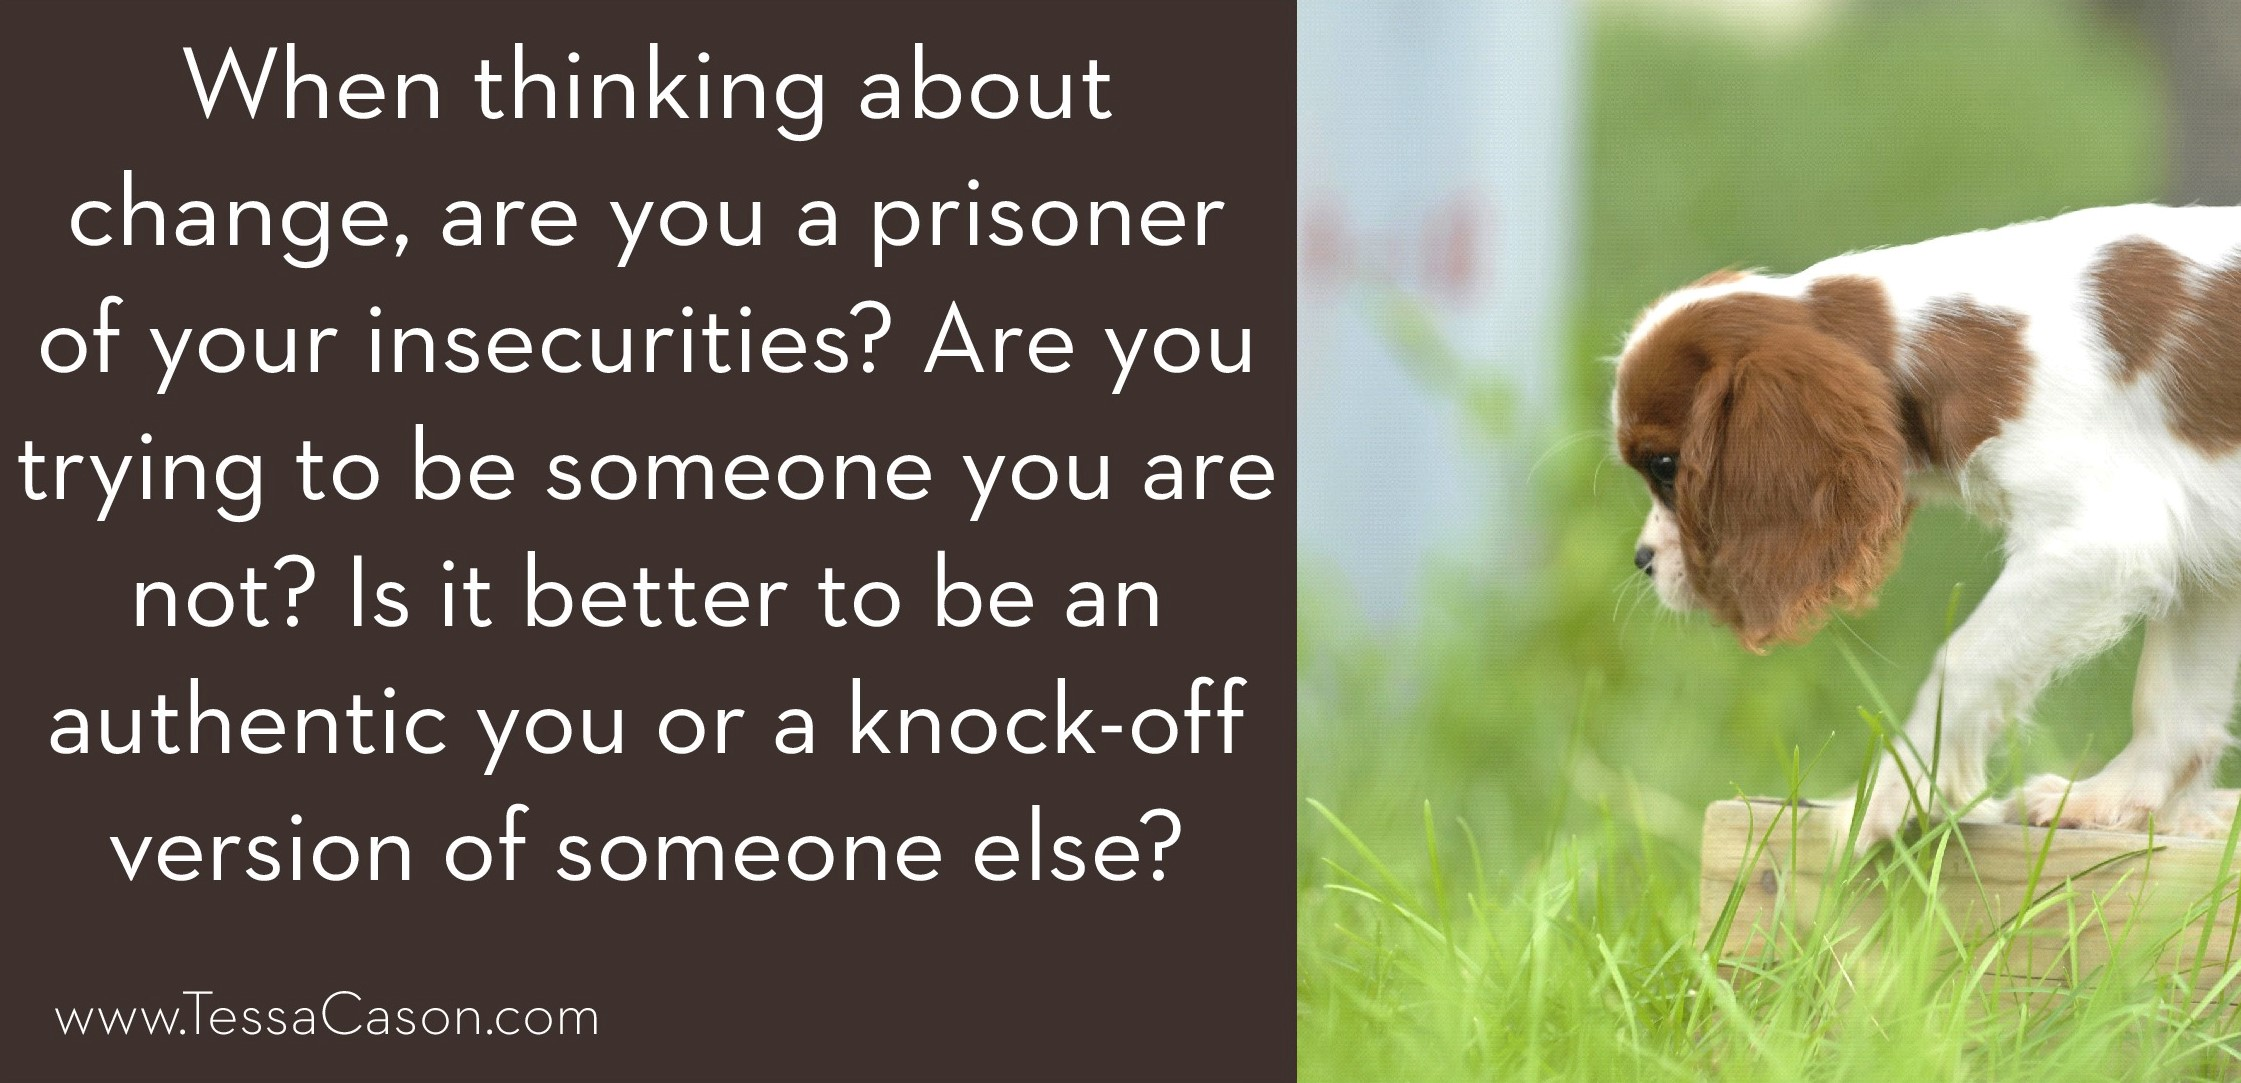 Are you a prisoner of your insecurities